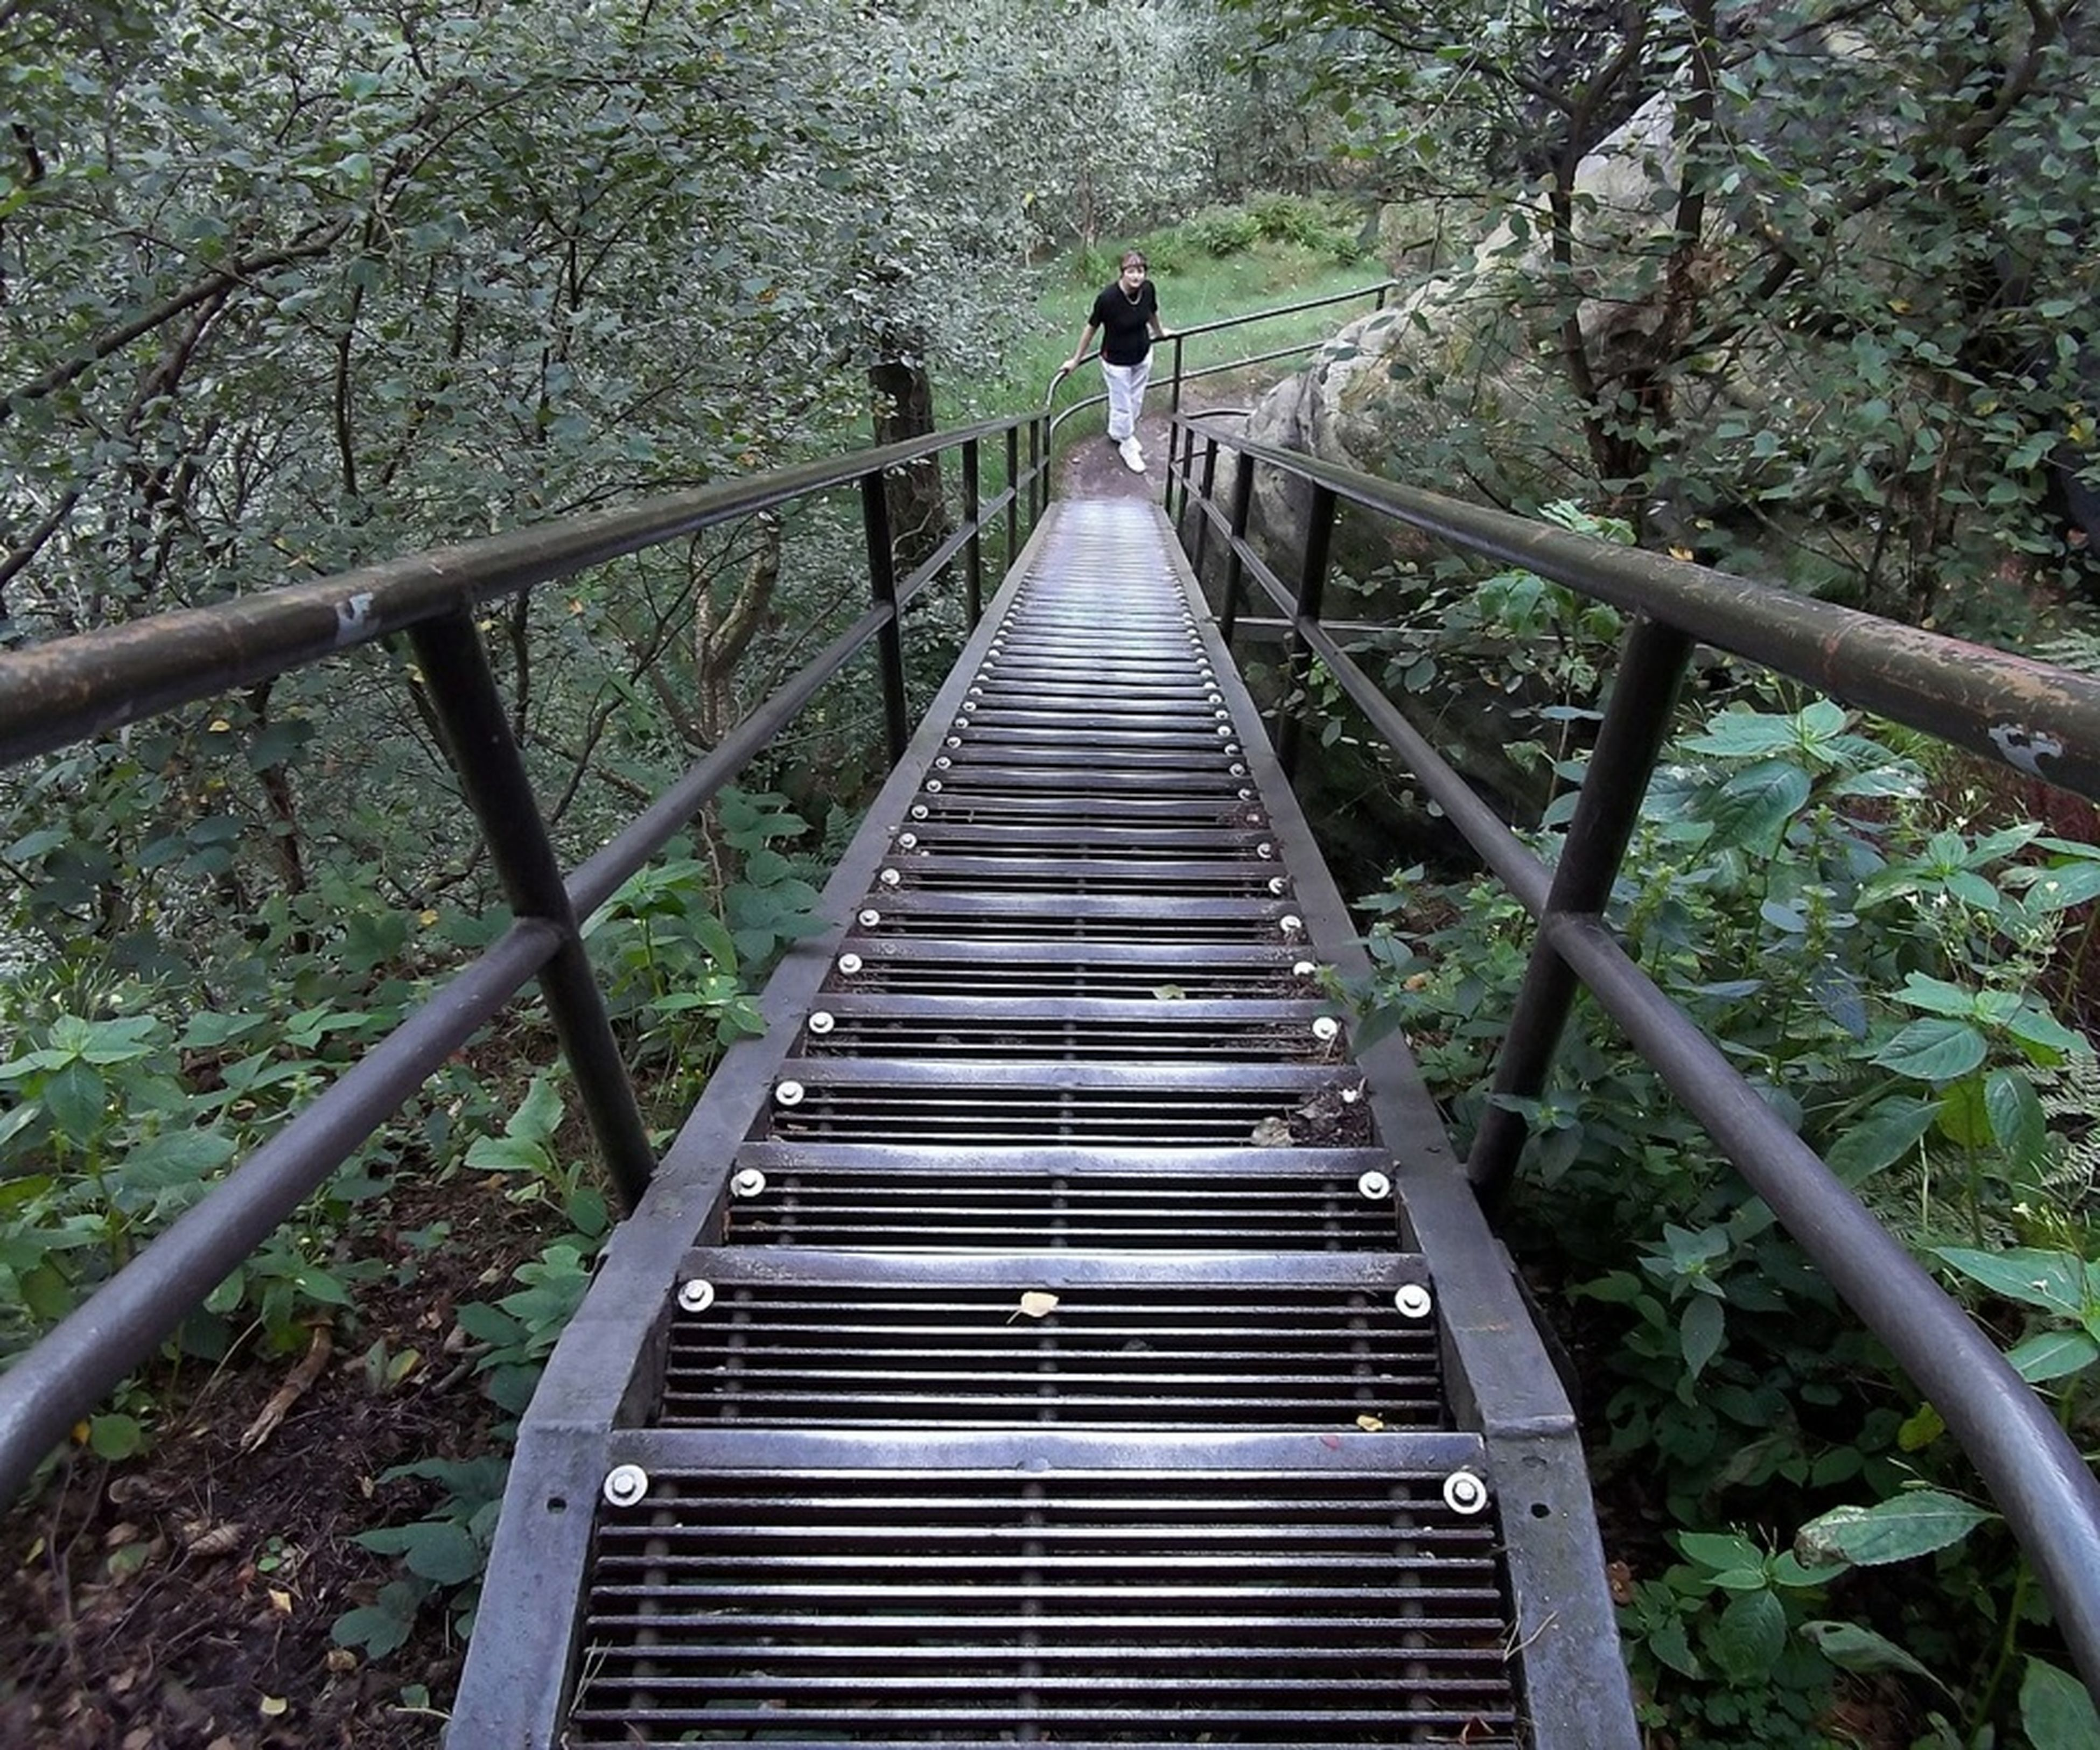 railing, tree, the way forward, footbridge, steps, diminishing perspective, connection, staircase, steps and staircases, growth, forest, tranquility, branch, nature, bridge - man made structure, wood - material, boardwalk, built structure, plant, day